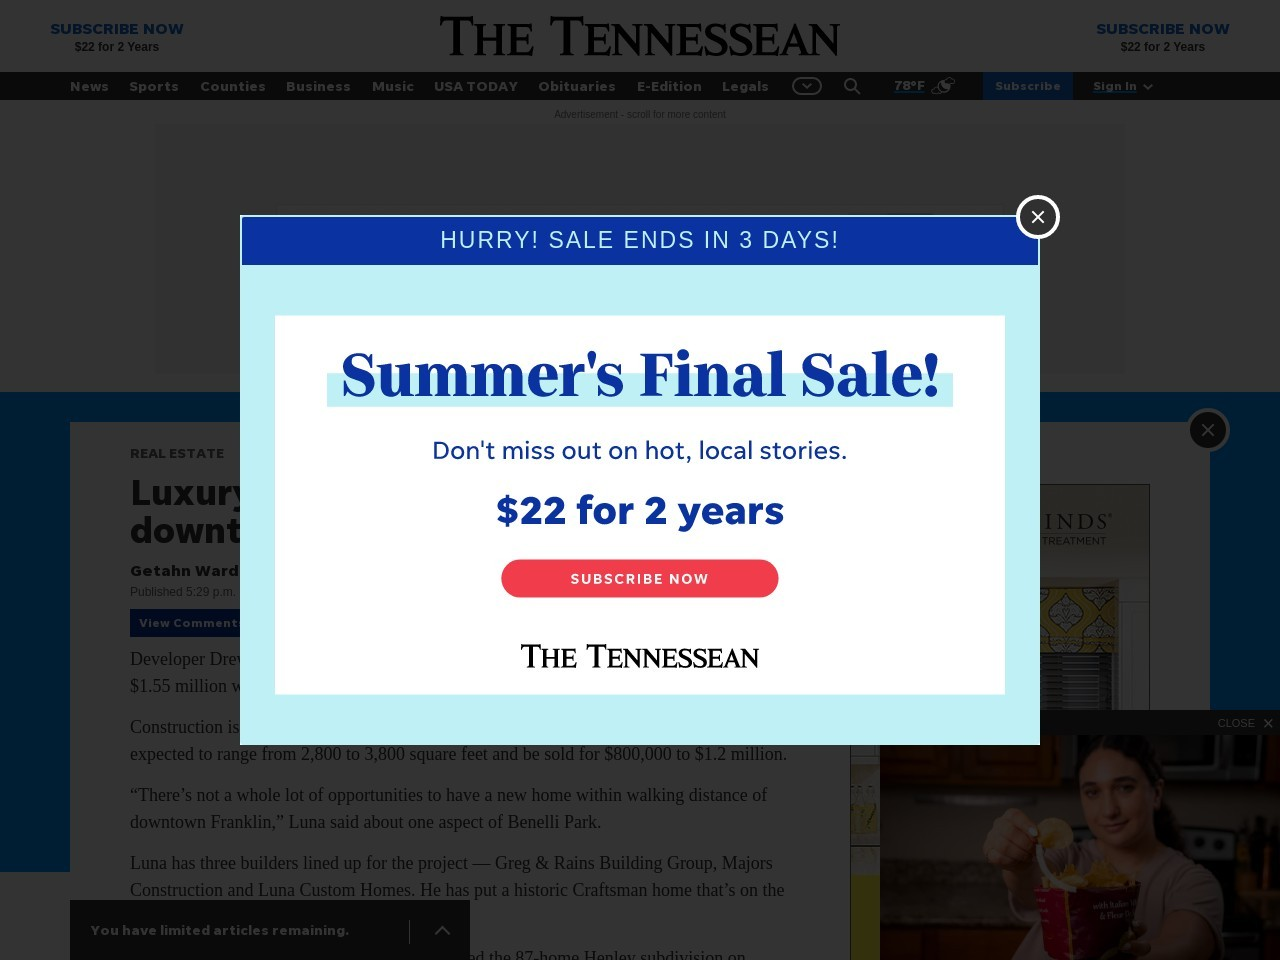 Luxury homes planned near downtown Franklin